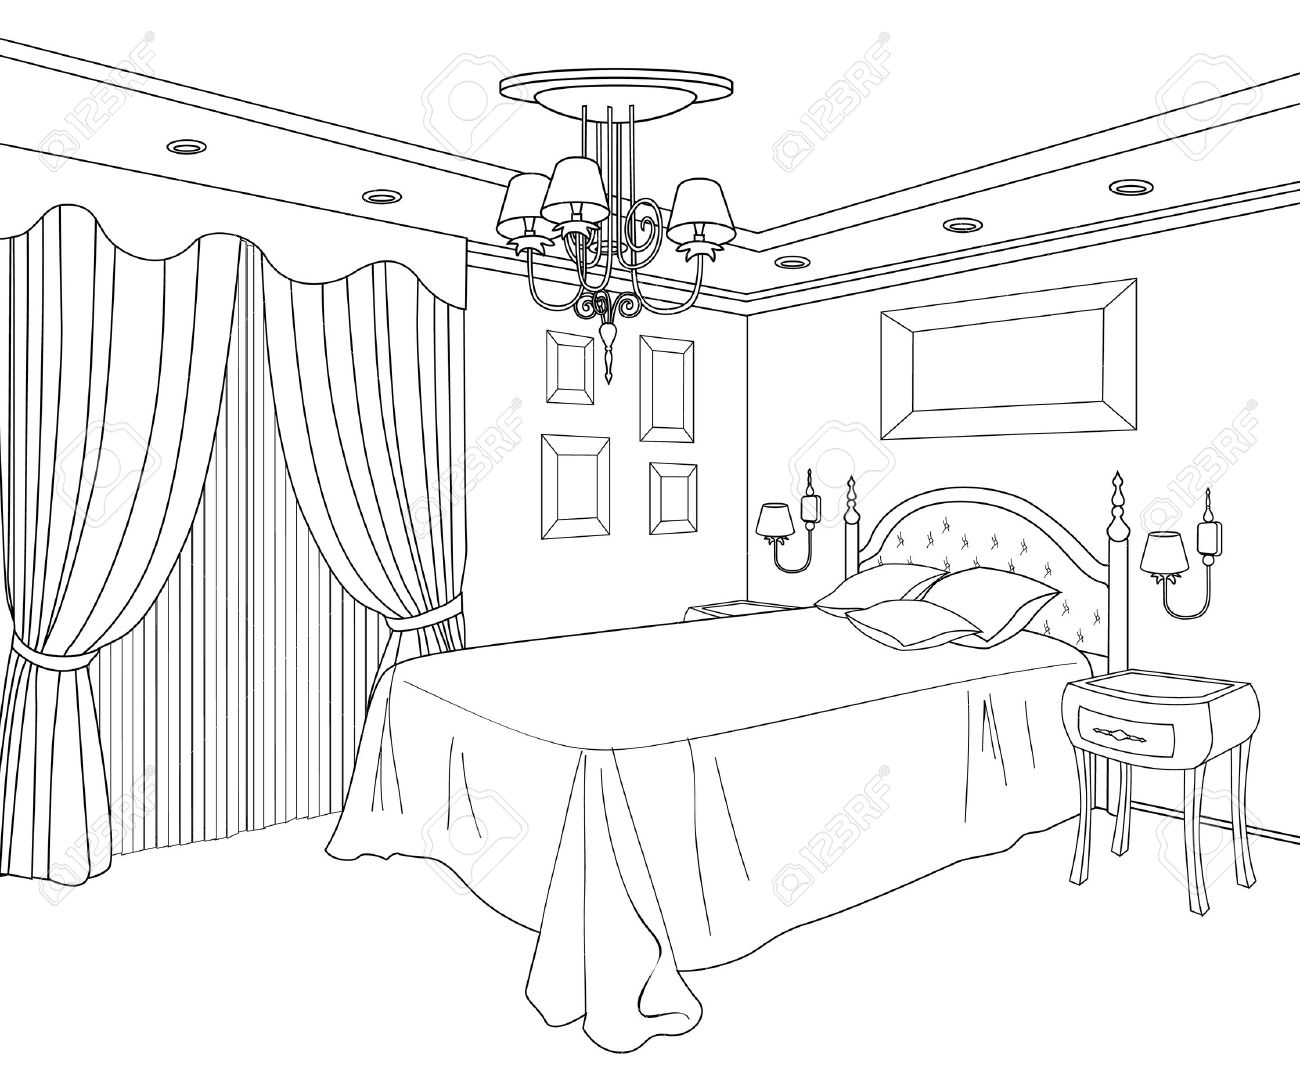 Bedroom drawing for kids - Bedroom Furniture Editable Vector Illustration Of An Outline Sketch Of A Interior Graphical Hand Bedroom